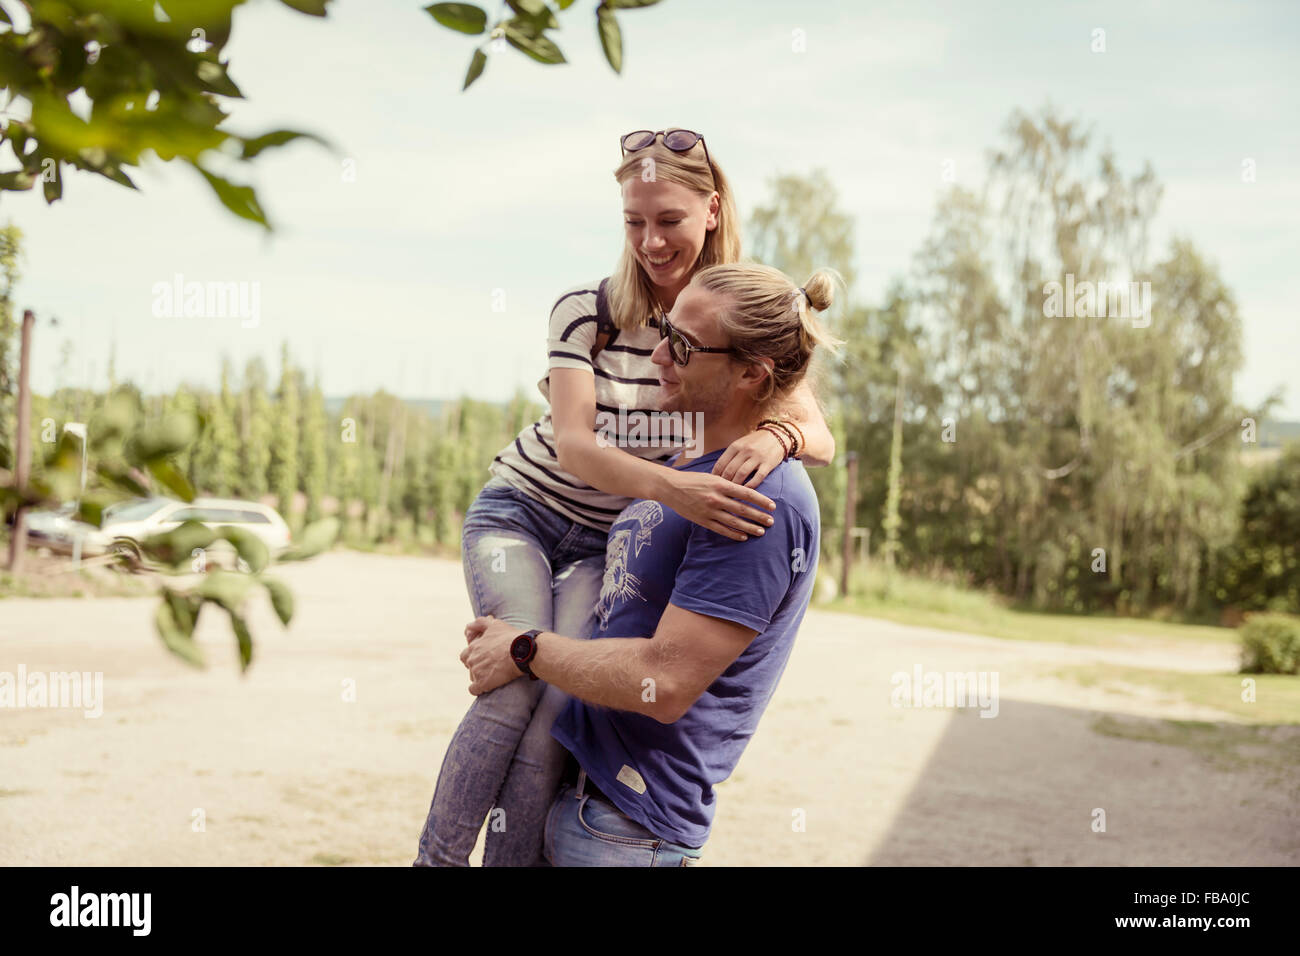 Sweden, Skane, Ostra Goinge, Man carrying girlfriend - Stock Image